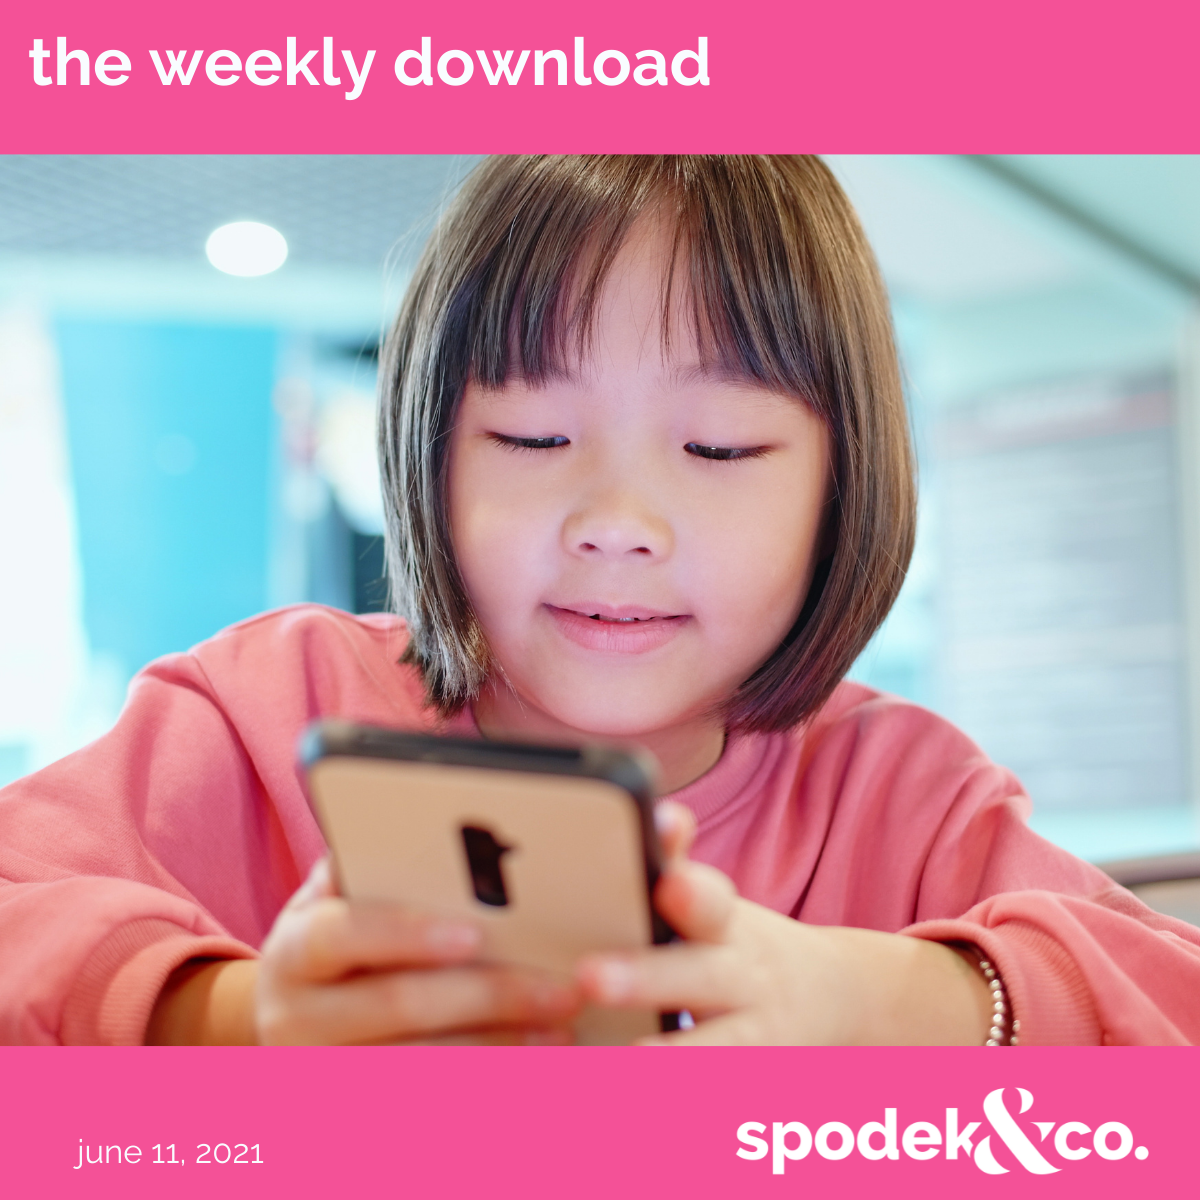 The Weekly Download – June 11, 2021